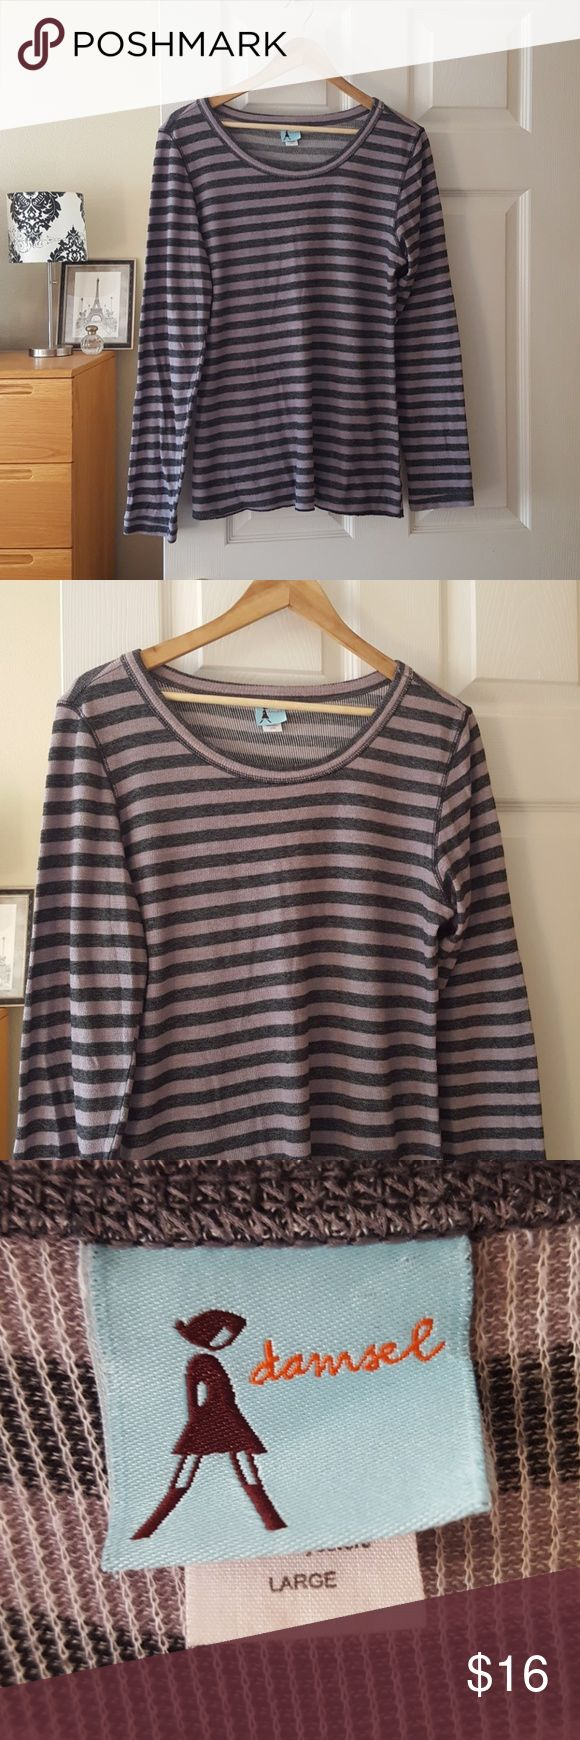 """urban outfitters long sleeve thermal striped top Measurements lying flat:  Bust: 21"""" Length:27"""" 60% cotton, 40% polyester Smoke-free home Damsel from UO  -I do not currently offer a bundle discount closet-wide, but I will work with you on pricing. 💕  -Prices firm on items under $10.  -No trades, please.  Thank you for shopping my closet, it means a lot to me! Urban Outfitters Tops"""